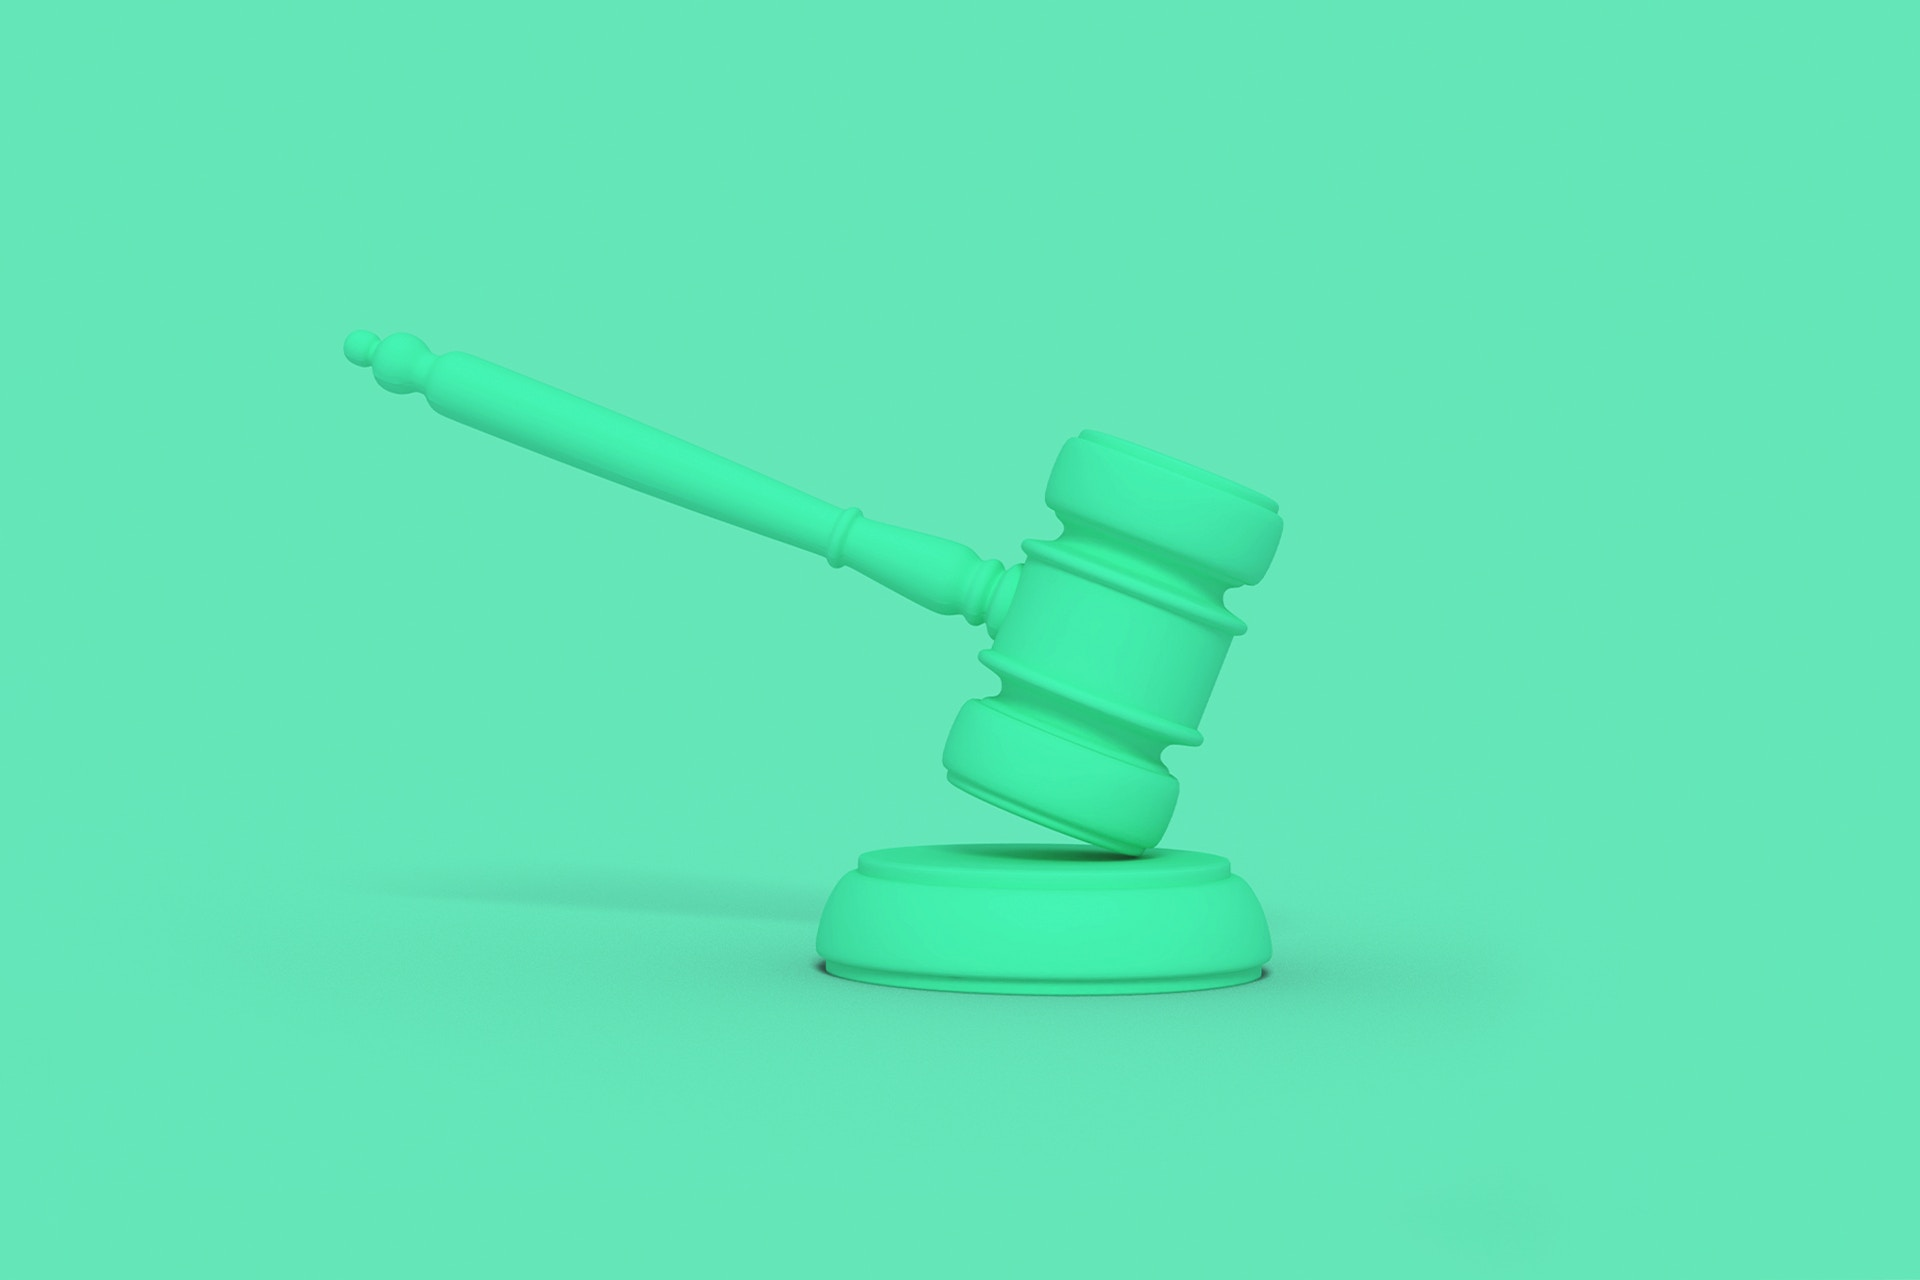 The judgement is in on your PR reputation! A green cartoon gavel is pictured being stuck down against a green backdrop